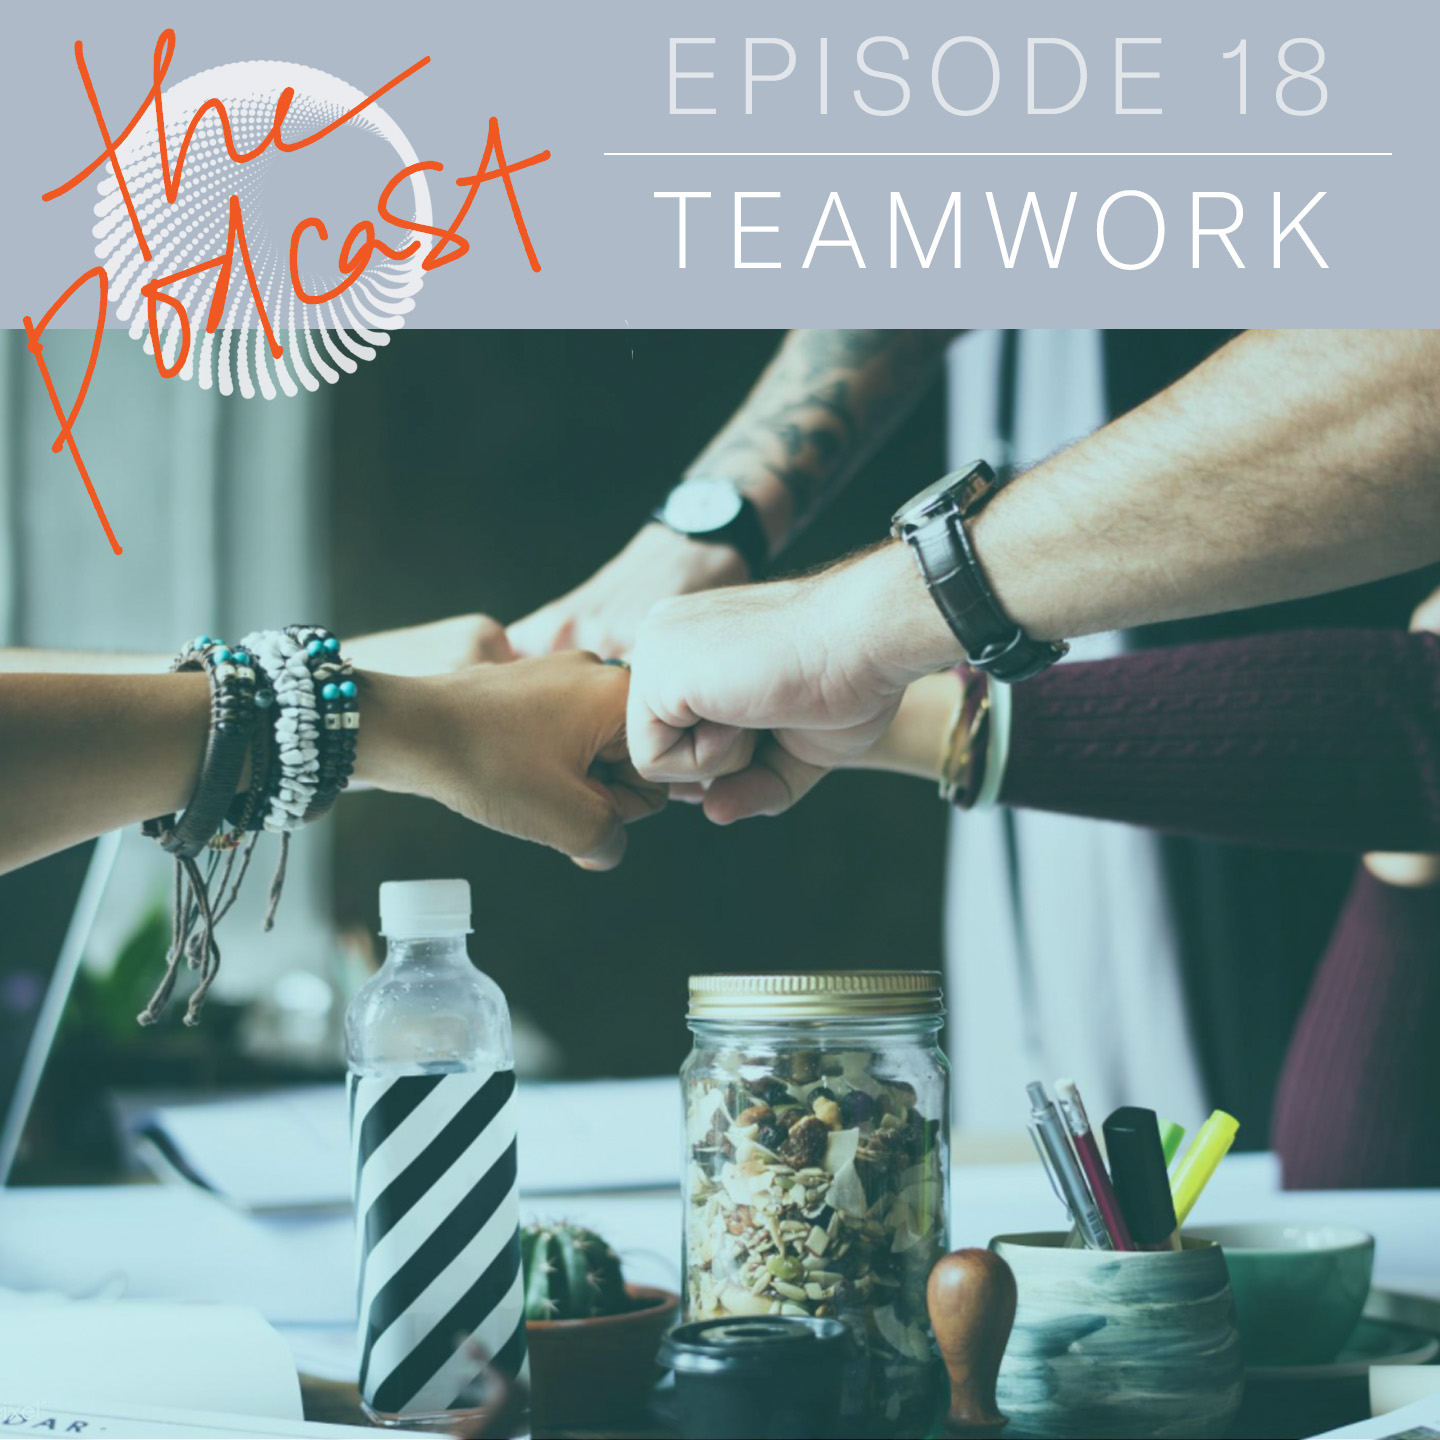 Episode 1.18: Teamwork   GROWING A BUSINESS OF CHANGE  Tim and Tuesday explore how we work with distributed teams: as 'managers of one', how can we stay connected and navigate complex issues and processes elegantly in the context of a rapidly-growing business? ||  For show notes, visit the episode page . || May 14, 2019